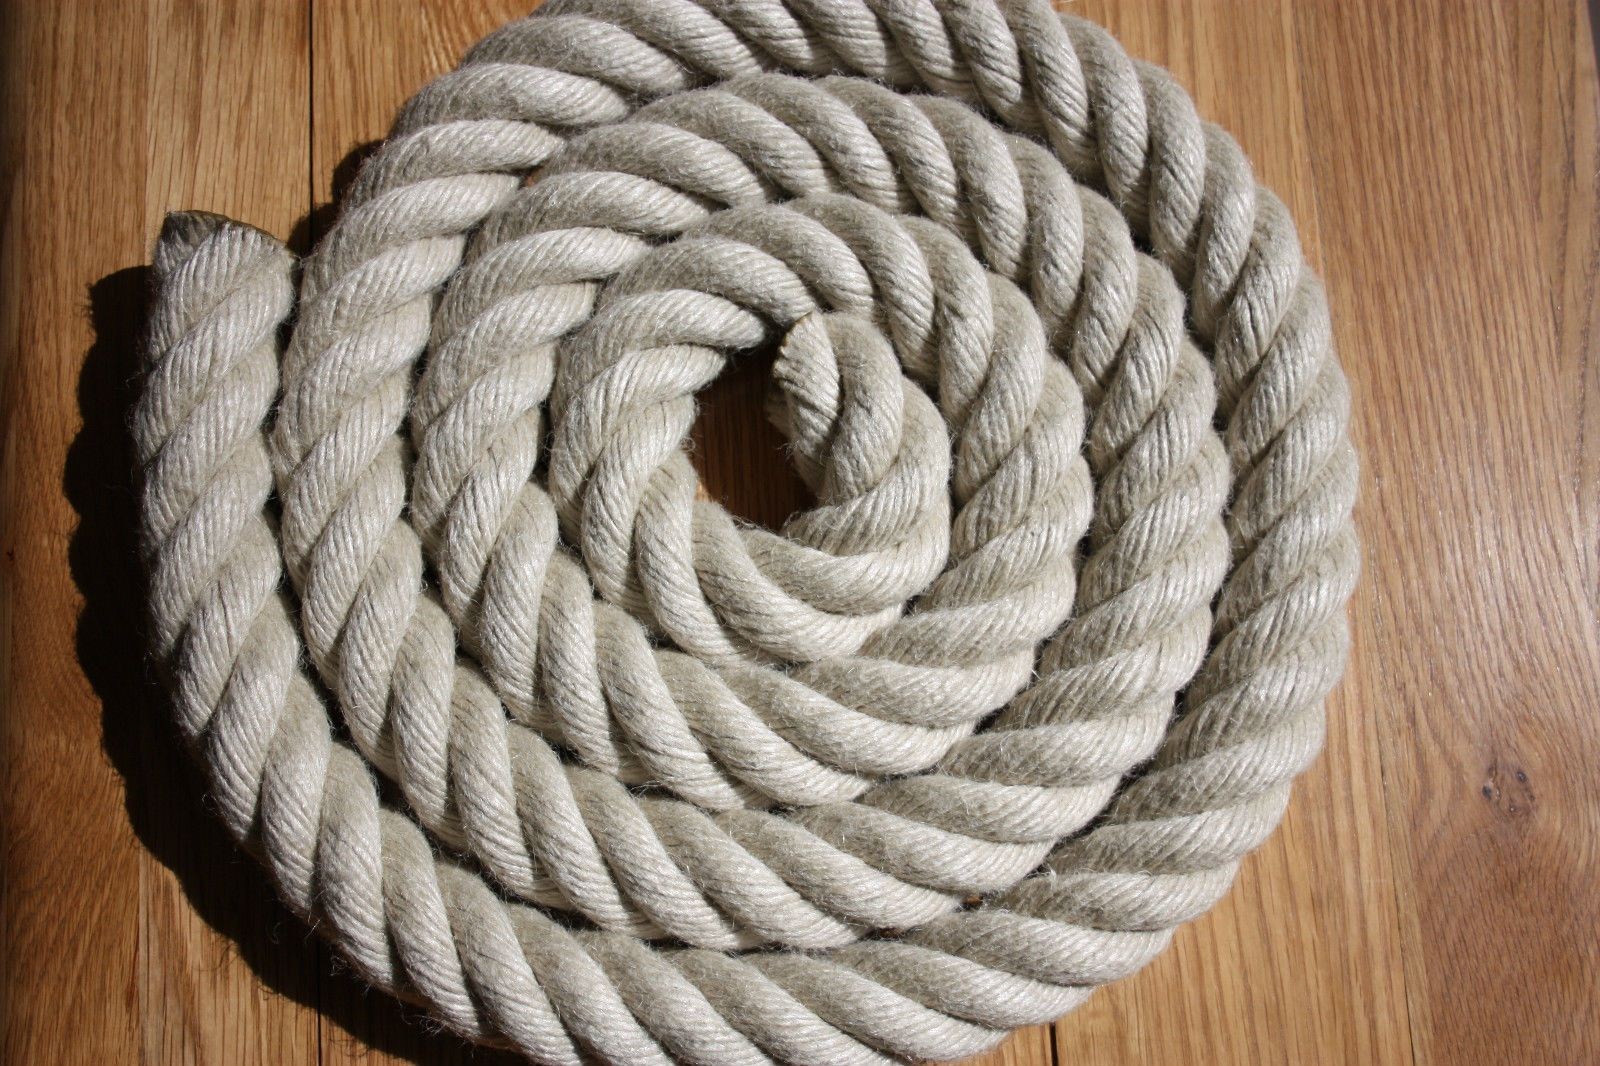 Details about Synthetic Hemp Handrail Banister Rope 12mm 16mm 18mm